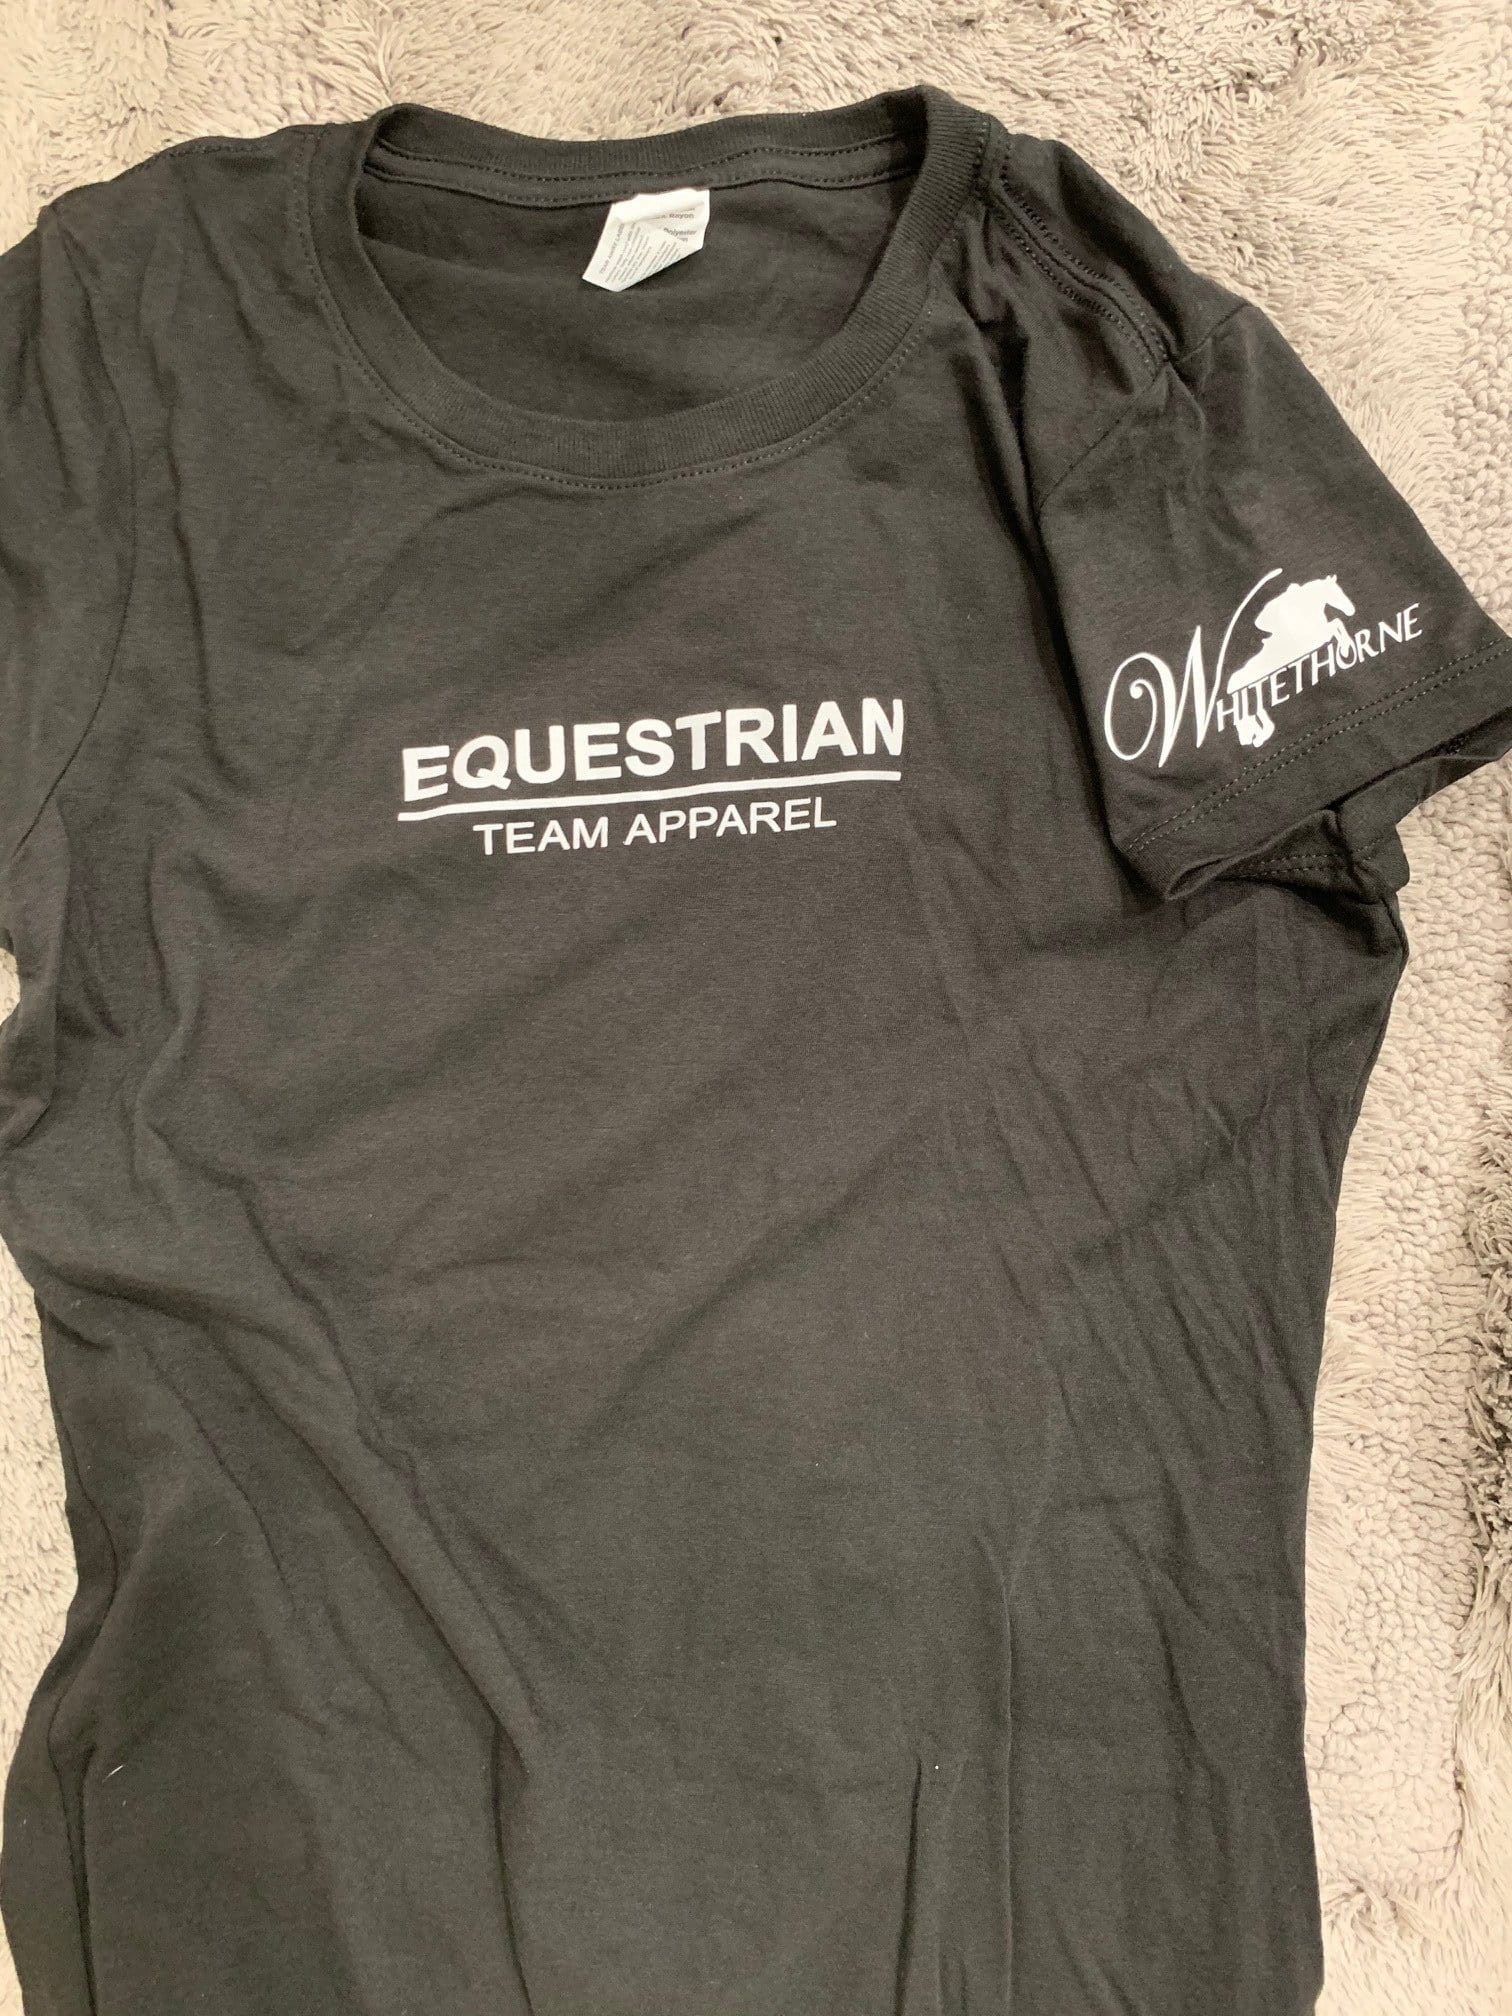 Equestrian Team Apparel Custom Shirts Whitehorne Jumper T-Shirt equestrian team apparel online tack store mobile tack store custom farm apparel custom show stable clothing equestrian lifestyle horse show clothing riding clothes horses equestrian tack store